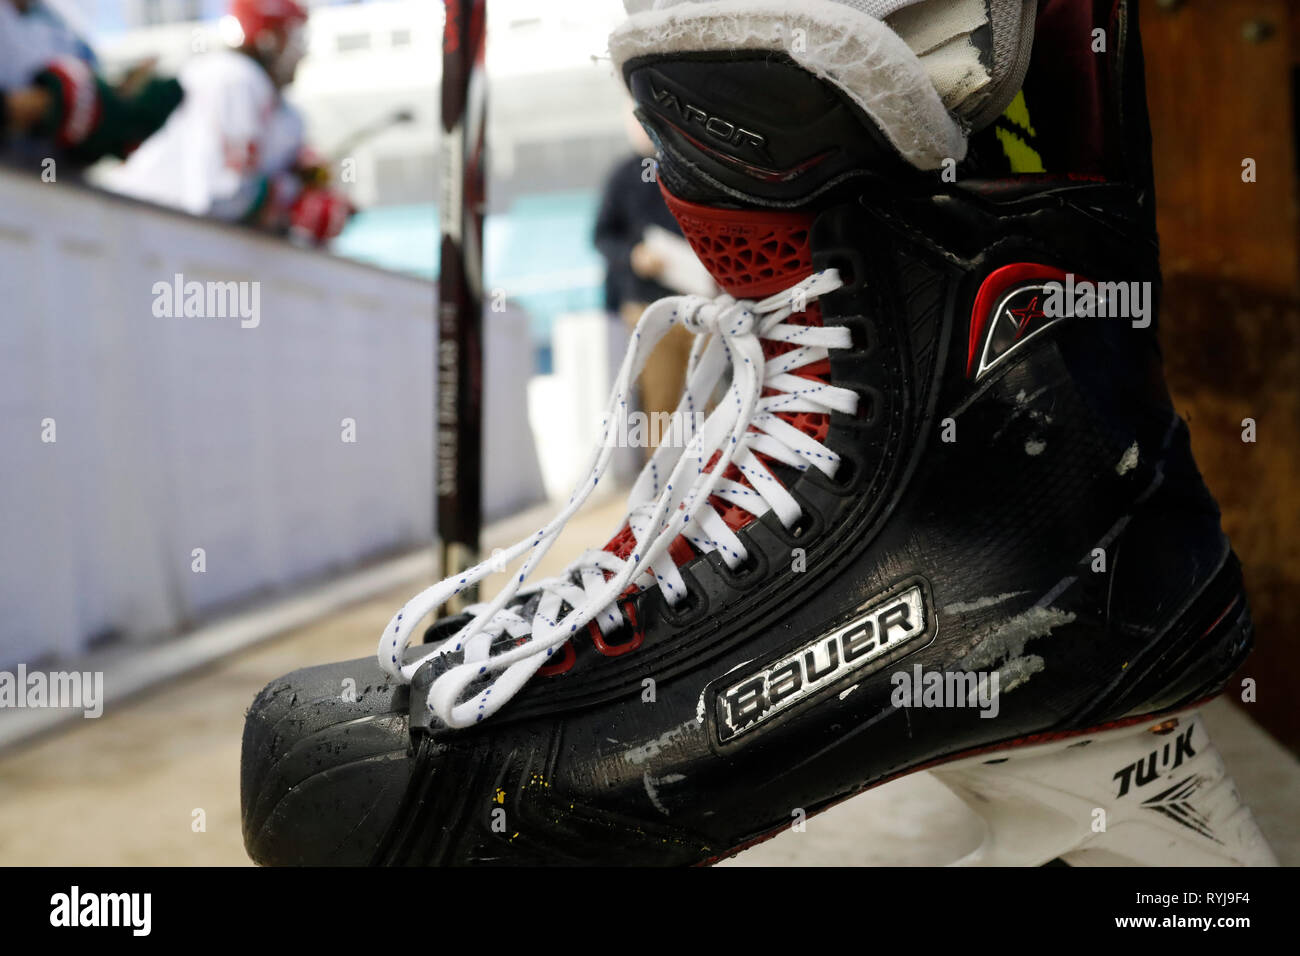 Ice Hockey. Player and ice skate. Close-up. Saint-Gervais. France. - Stock Image